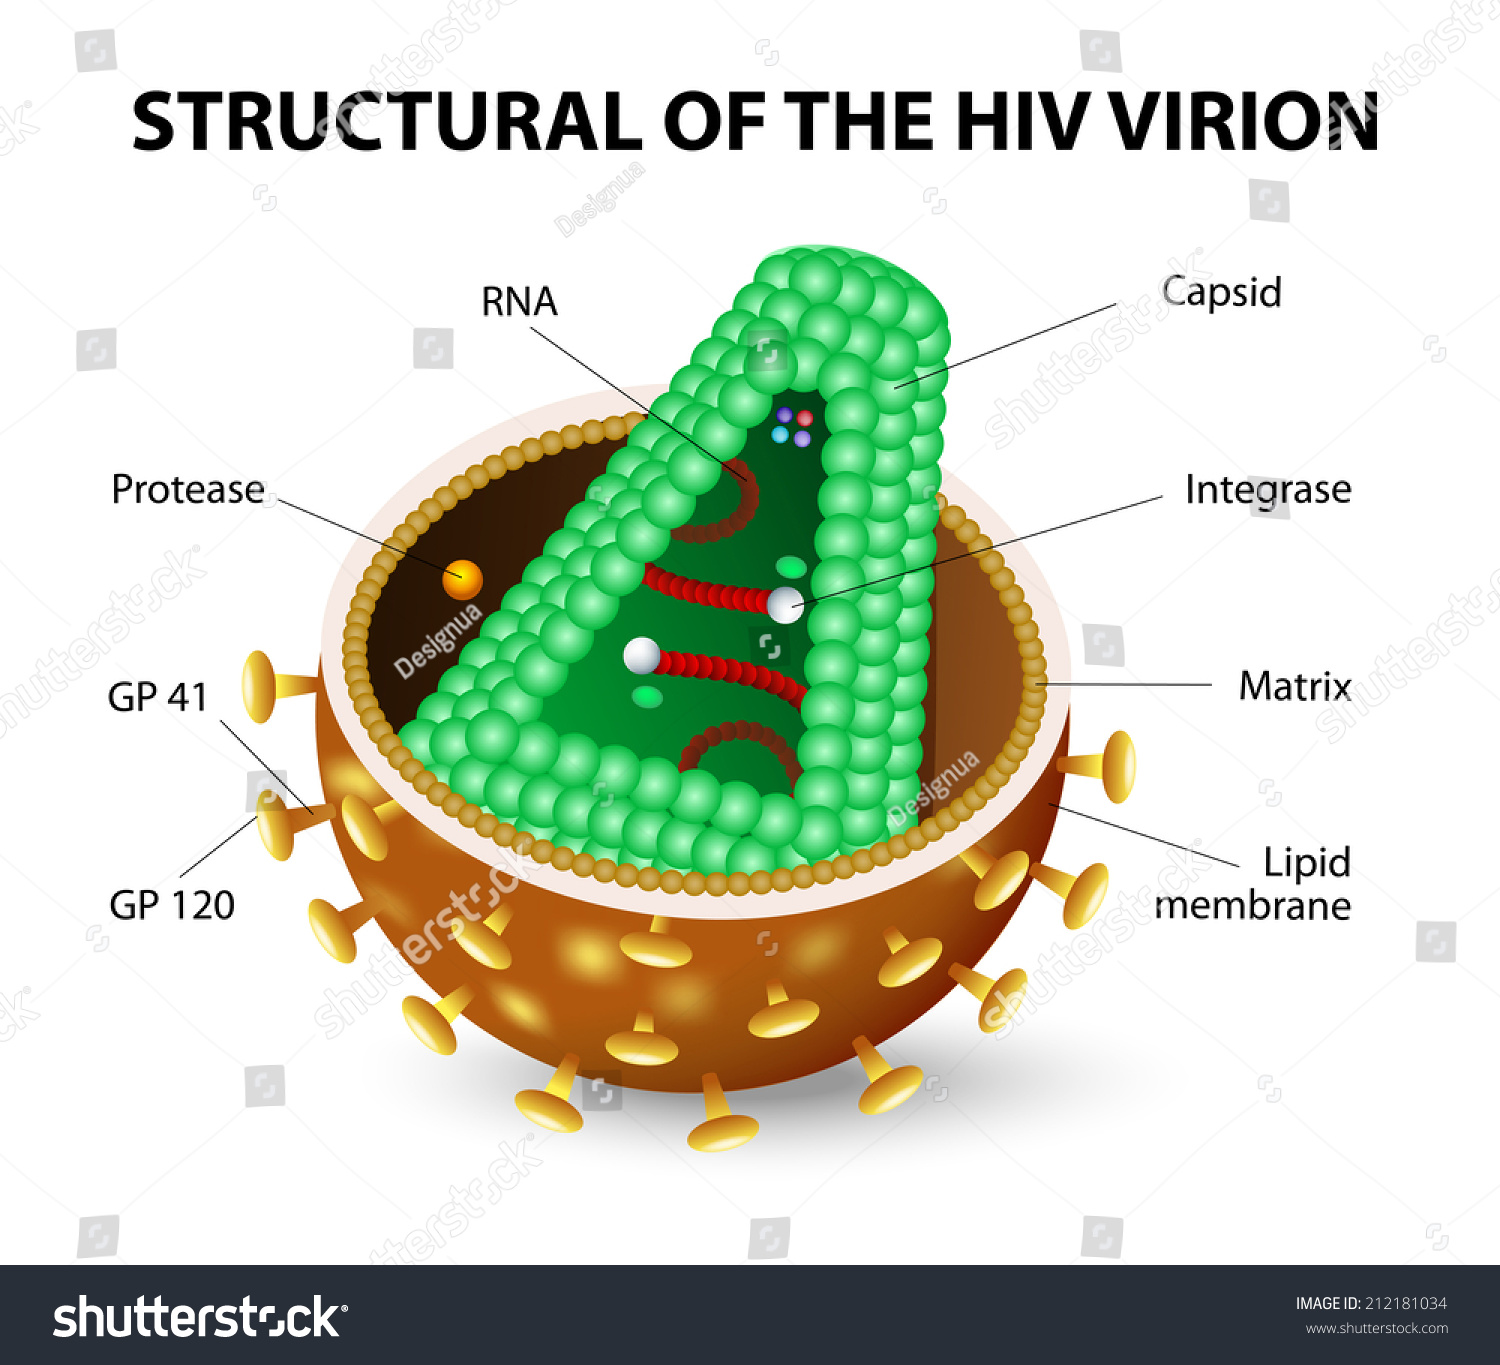 understanding the human immunodeficiency virus hiv Start studying ahii- hiv a client with human immunodeficiency virus undergoes virus (hiv) they demonstrate understanding of the information.